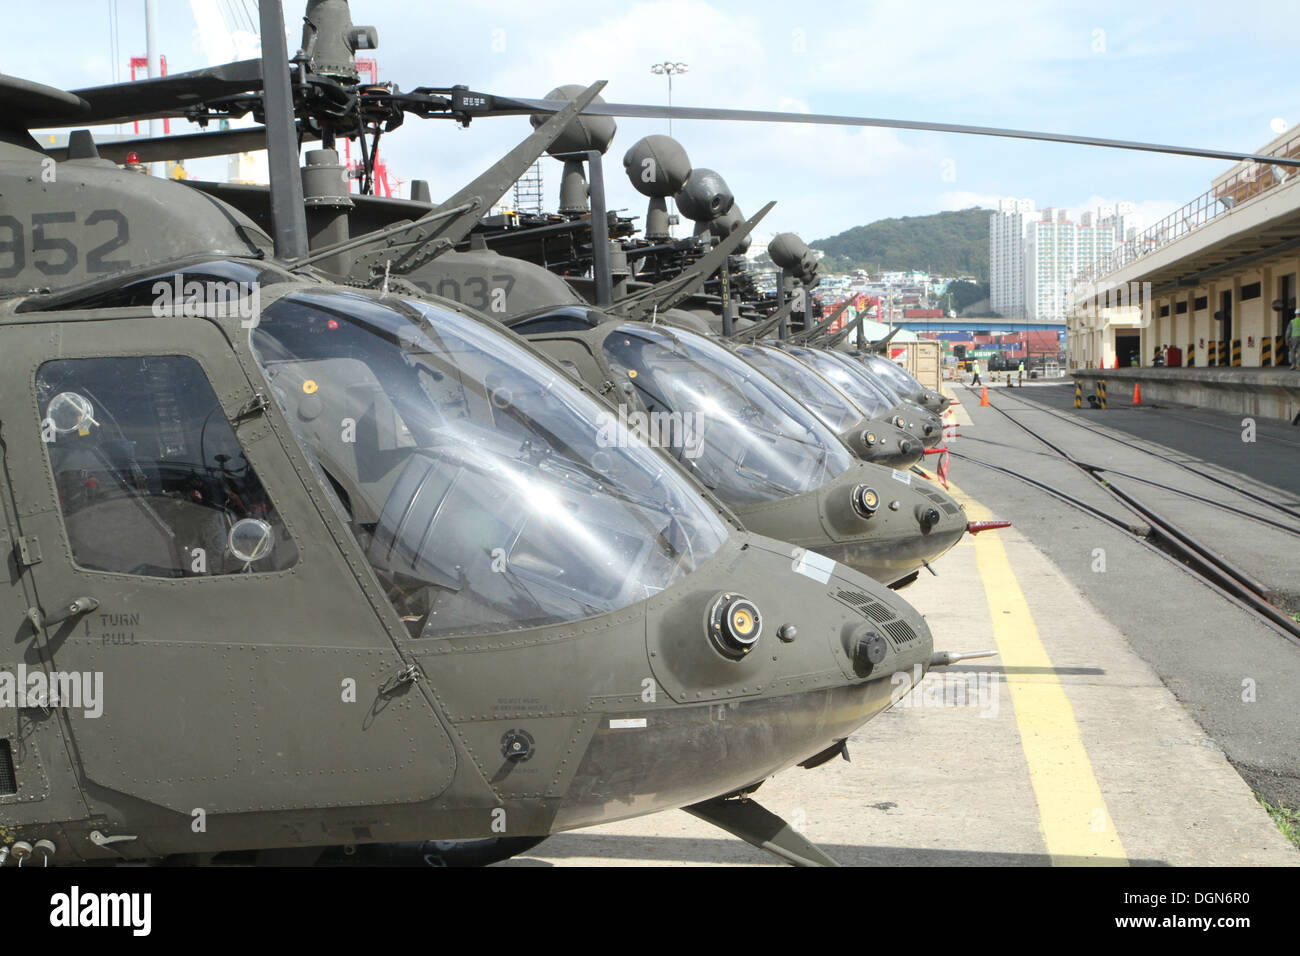 The OH-58D Kiowa Warrior helicopters are staged at Pier 8, Busan, Oct. 10. The 380 soldiers from the 4th Squadron, 6th Cavalry Regiment, and 30 OH-58D KW helicopters will deploy to the 2nd Combat Aviation Brigade. - Stock Image